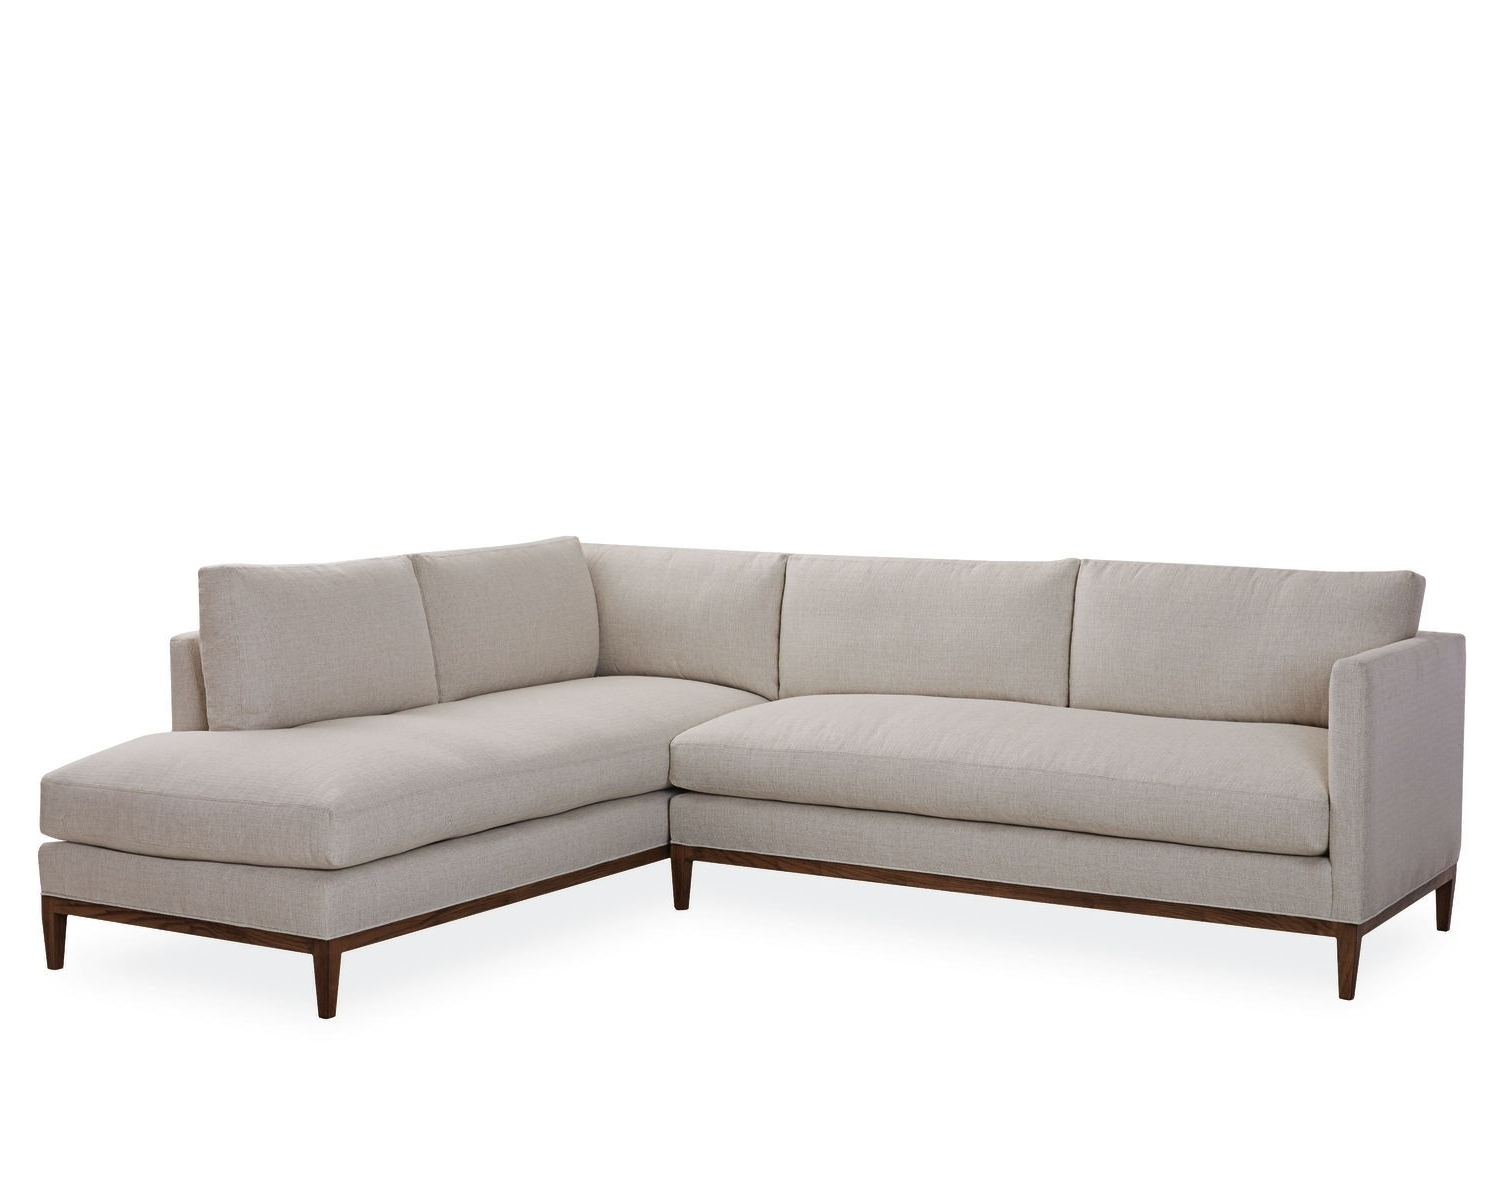 Best And Newest Lee Industries Sectional Sofas In American Furniture (View 6 of 20)